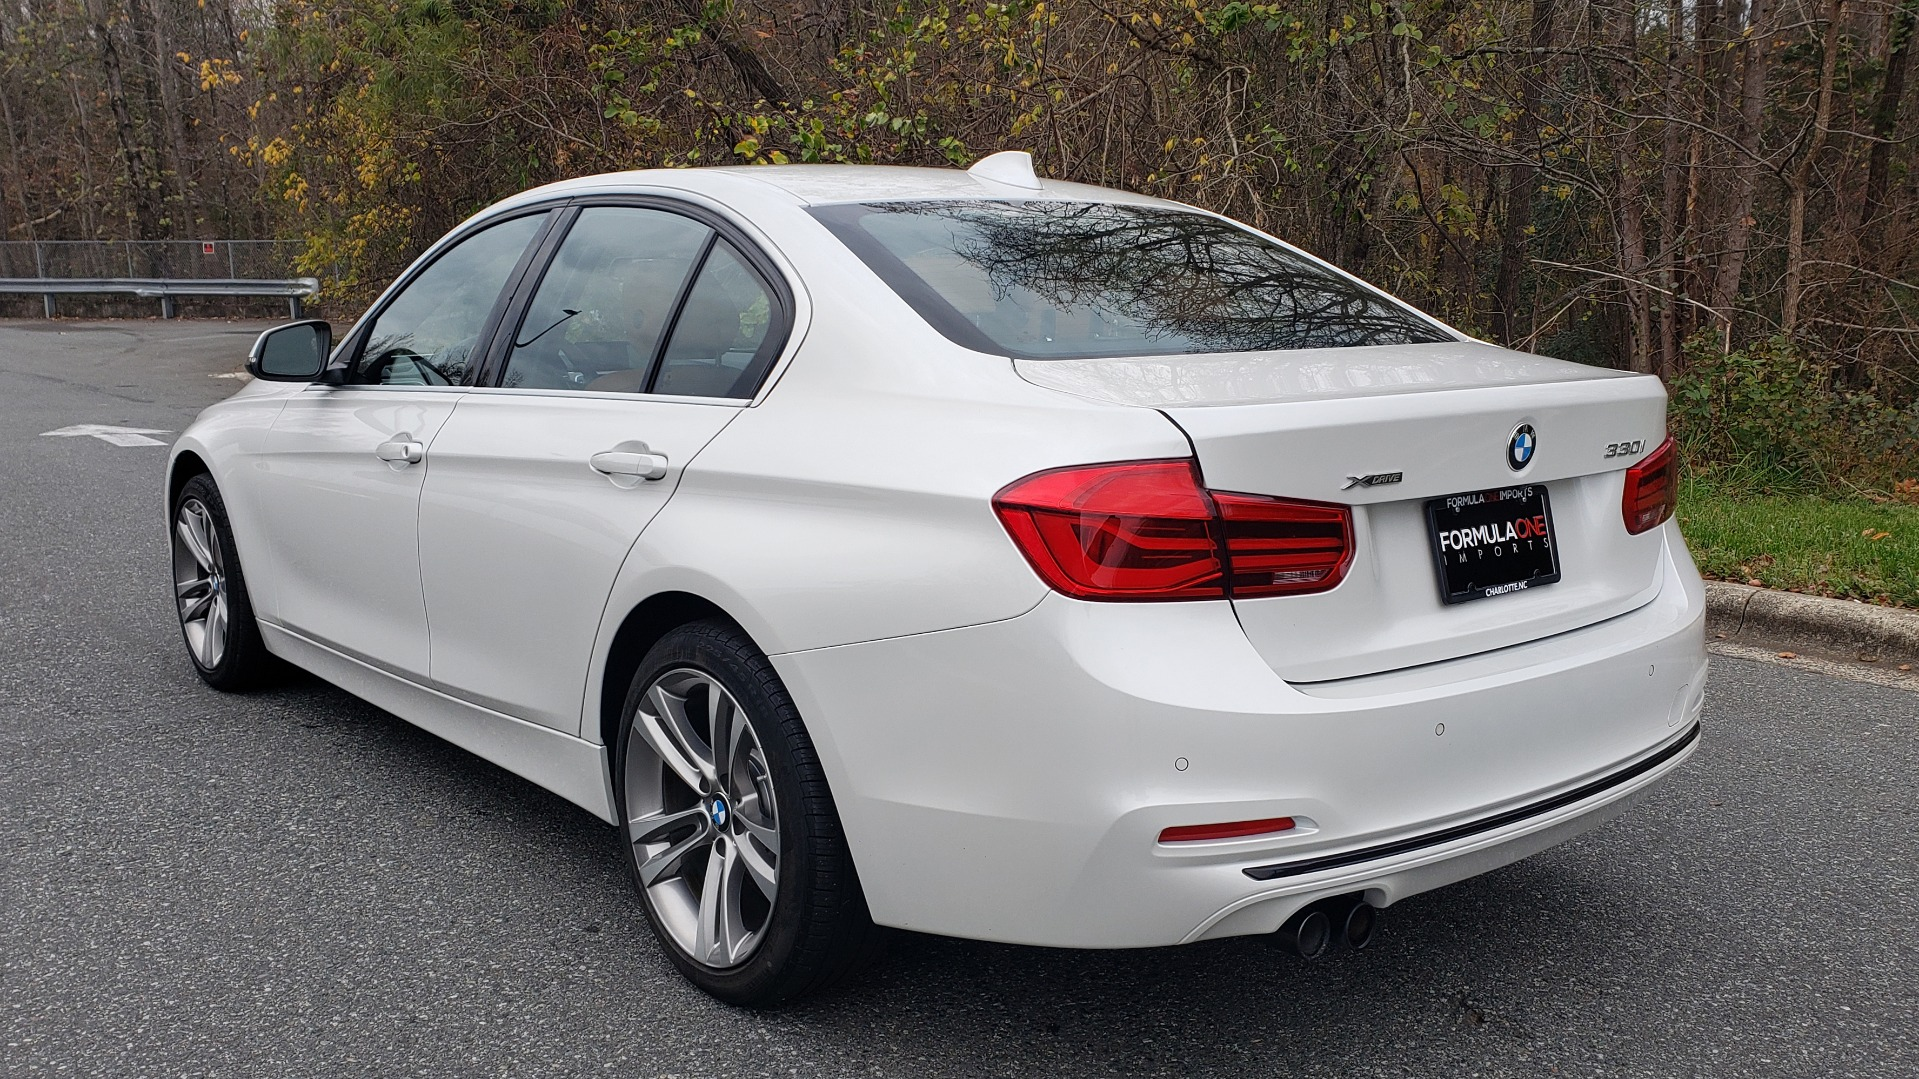 Used 2017 BMW 3 SERIES 330I XDRIVE PREMIUM / NAV / DRVR ASST / CLD WTHR / REARVIEW for sale $24,695 at Formula Imports in Charlotte NC 28227 3